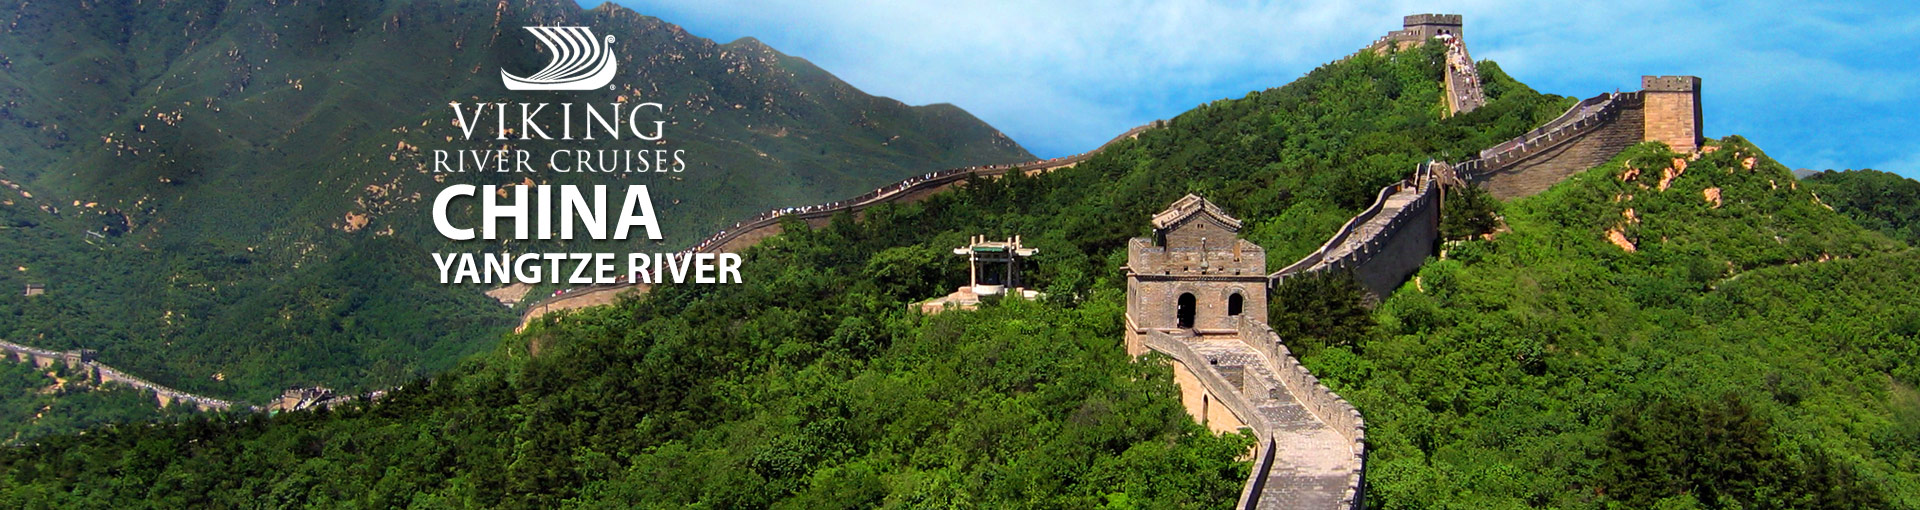 Viking River Cruises to China